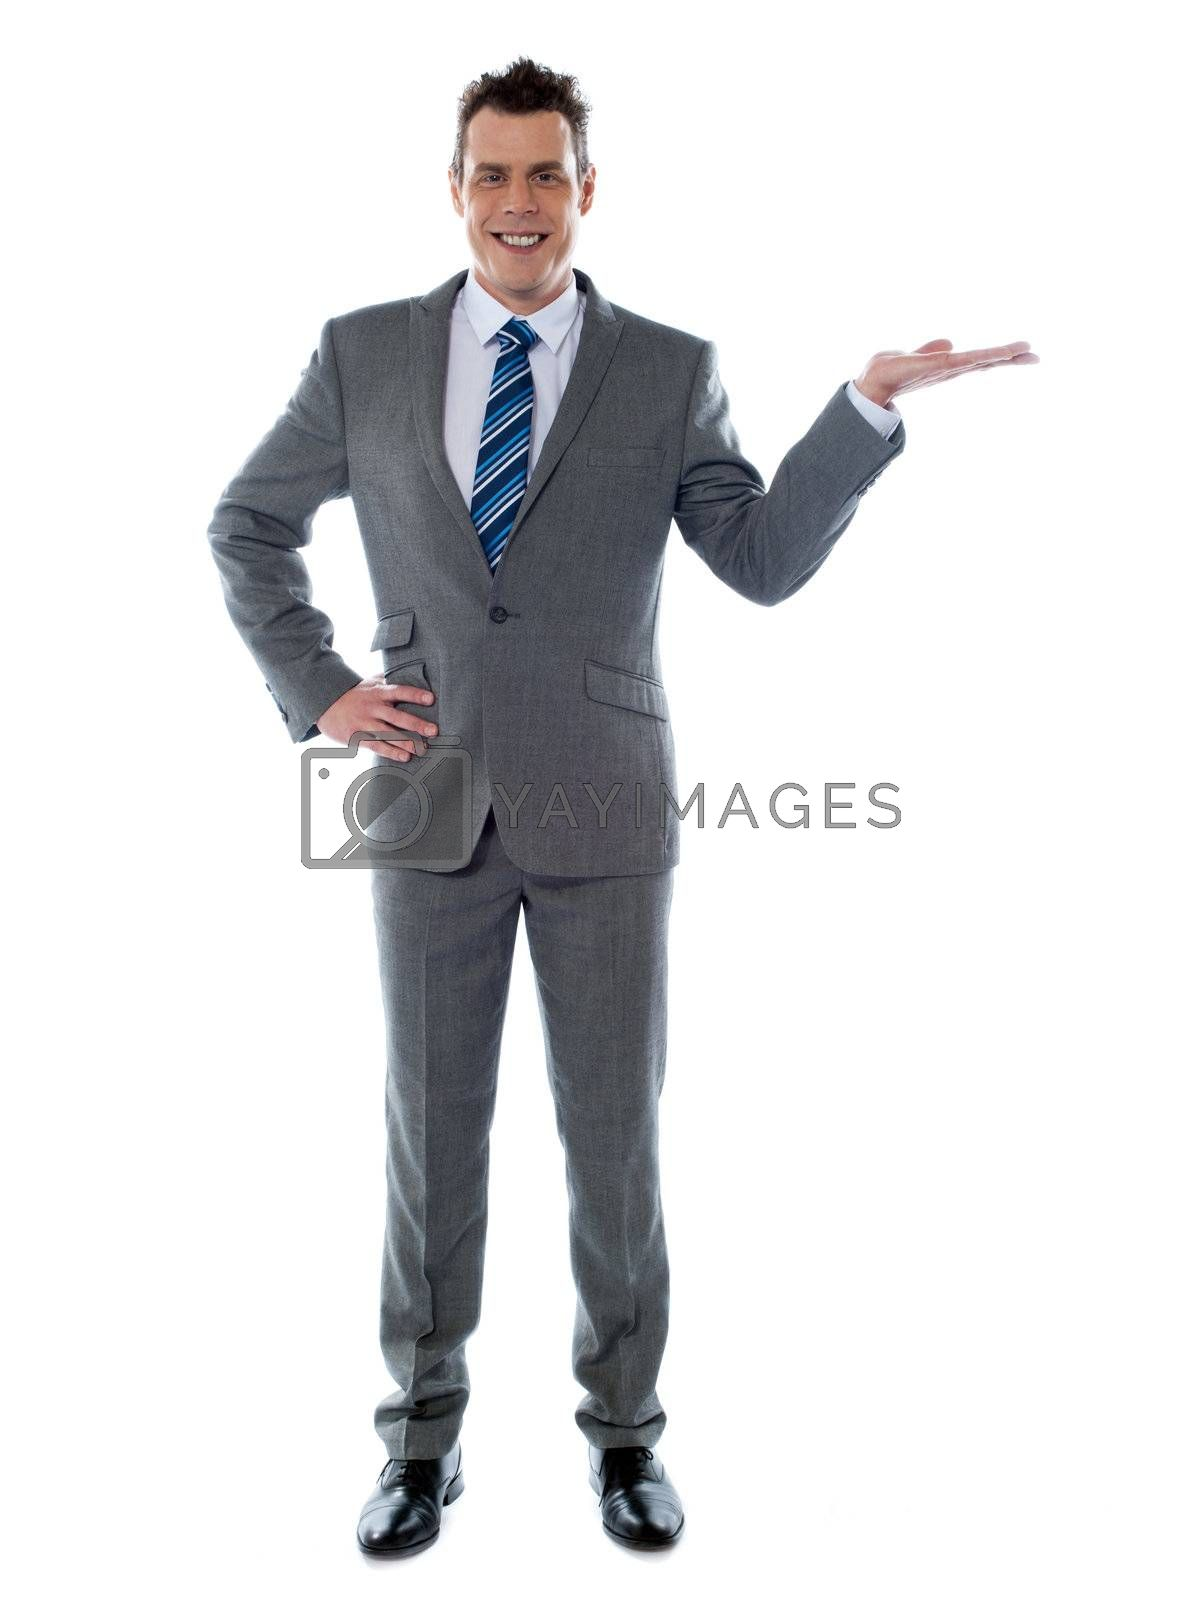 Portrait of a happy young businessman presenting a product against white background - copyspace